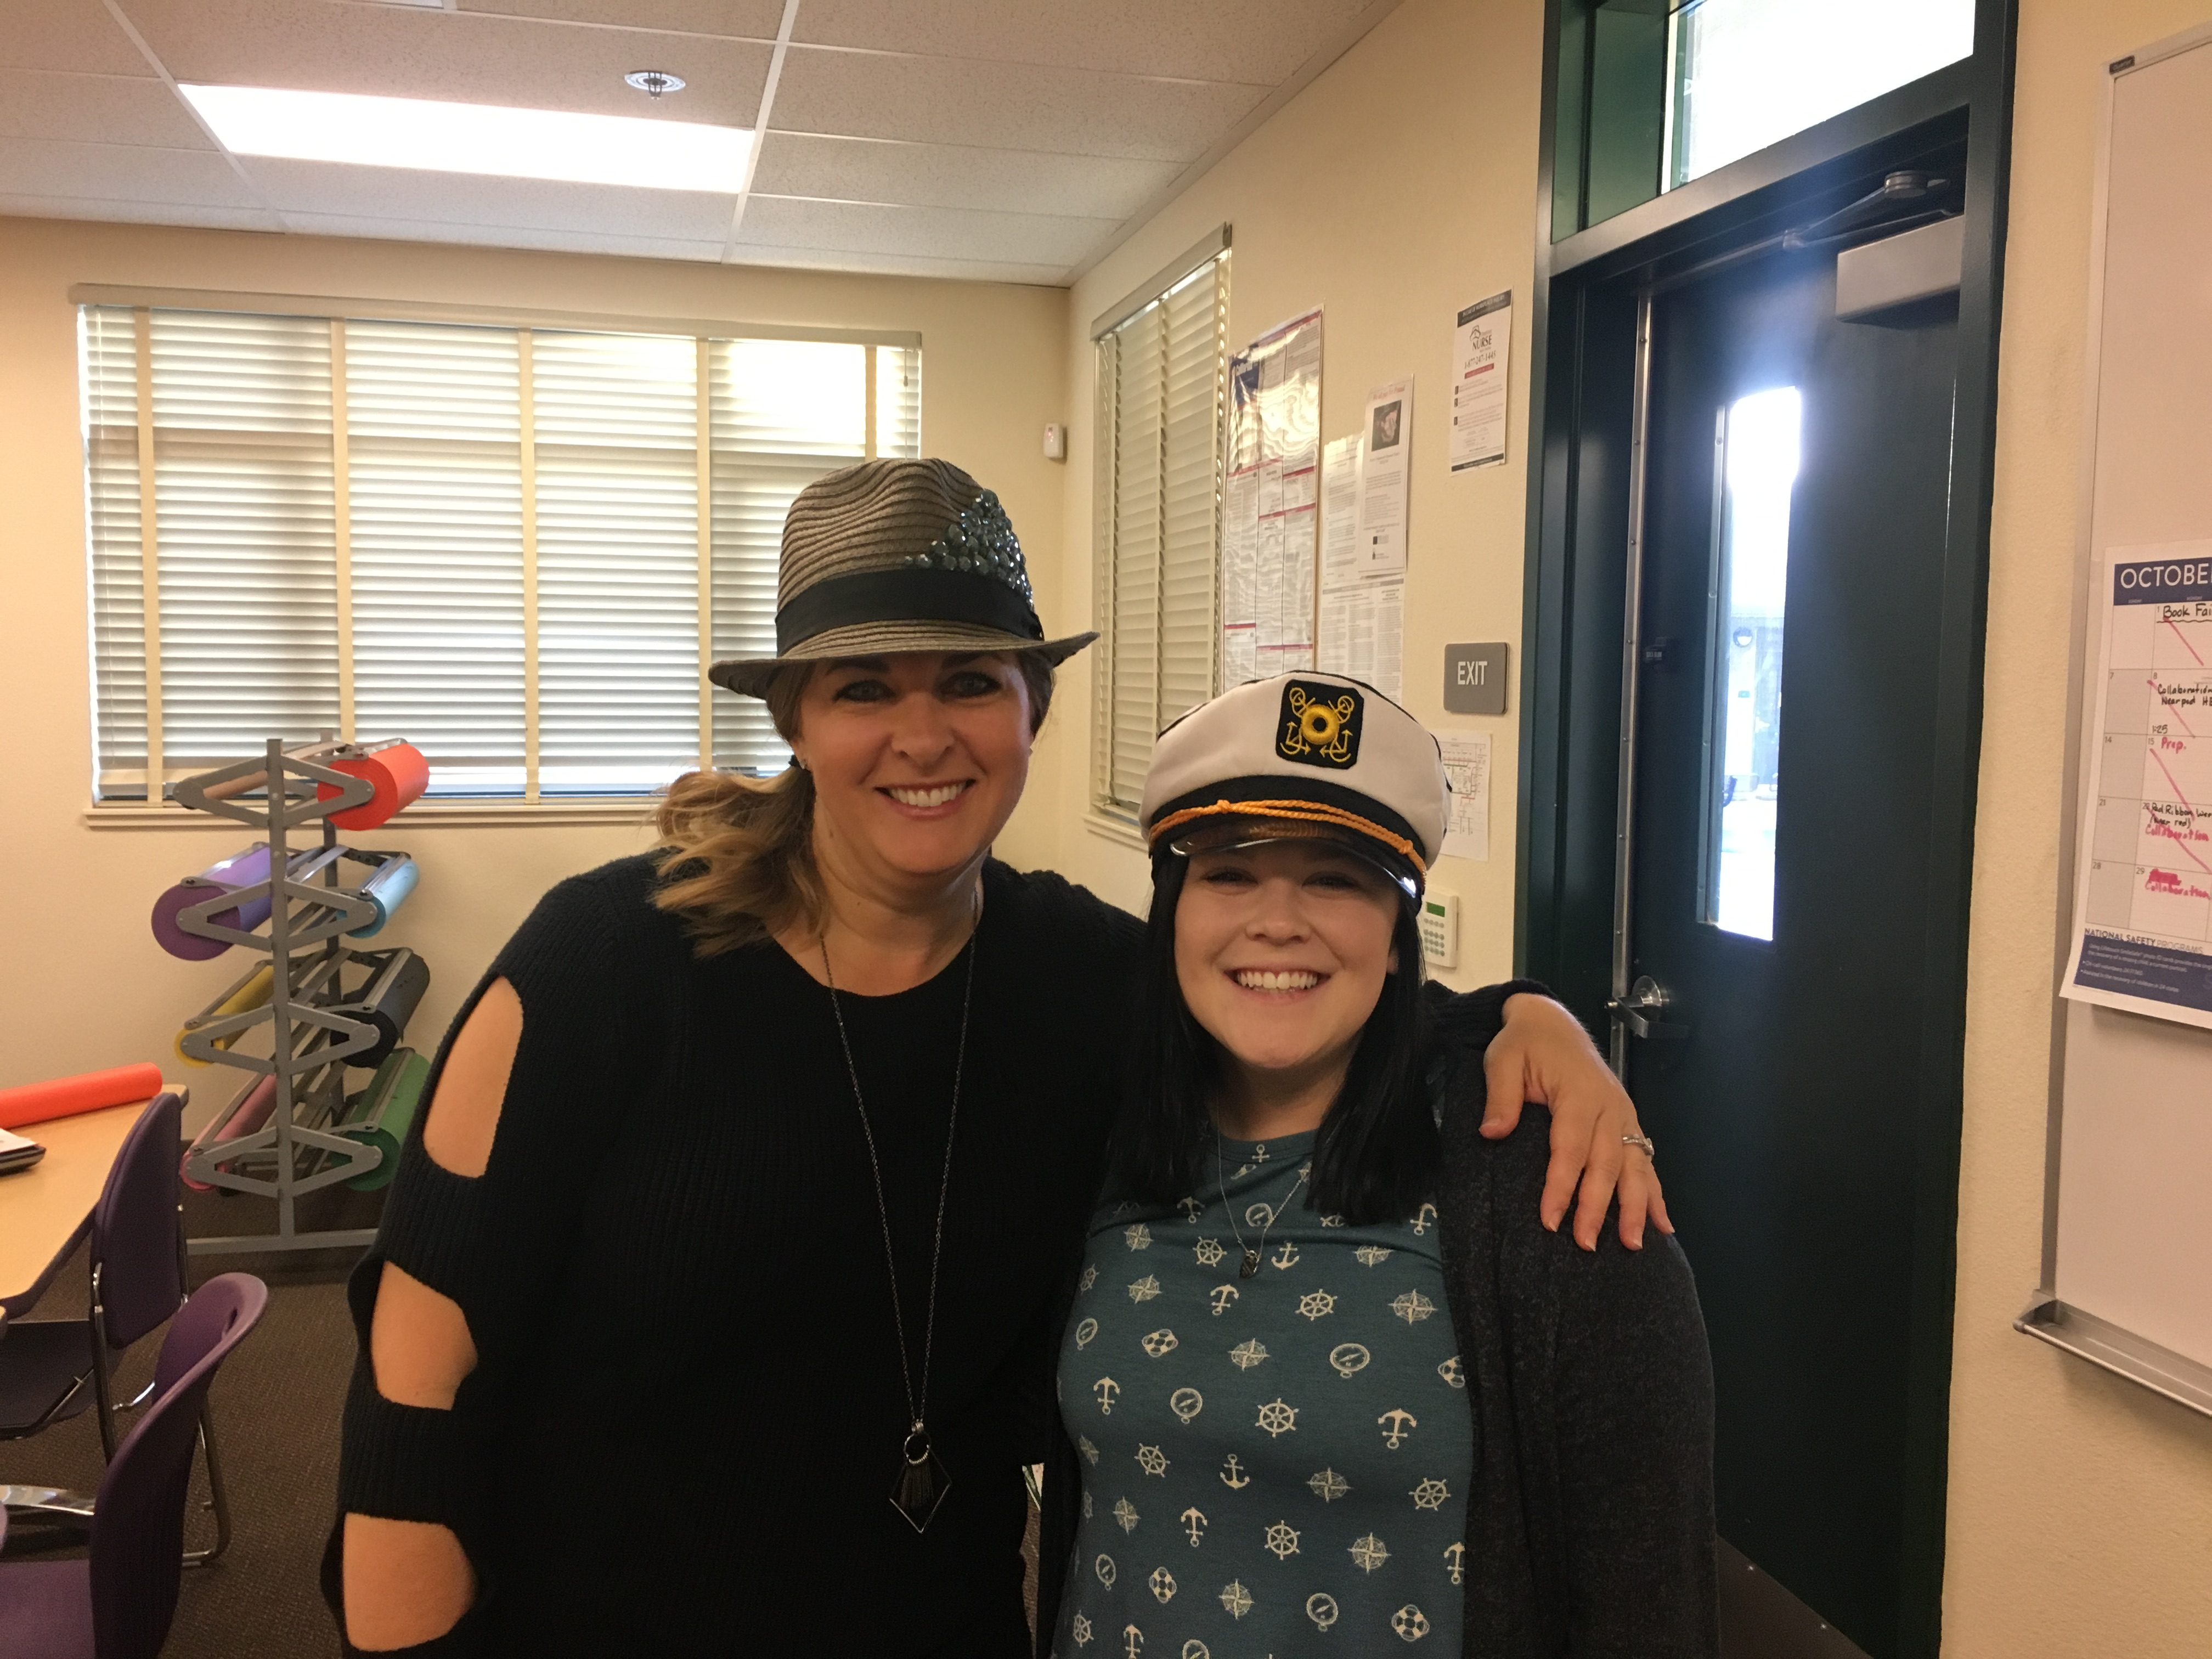 Students and teachers alike wearing different hats and caps